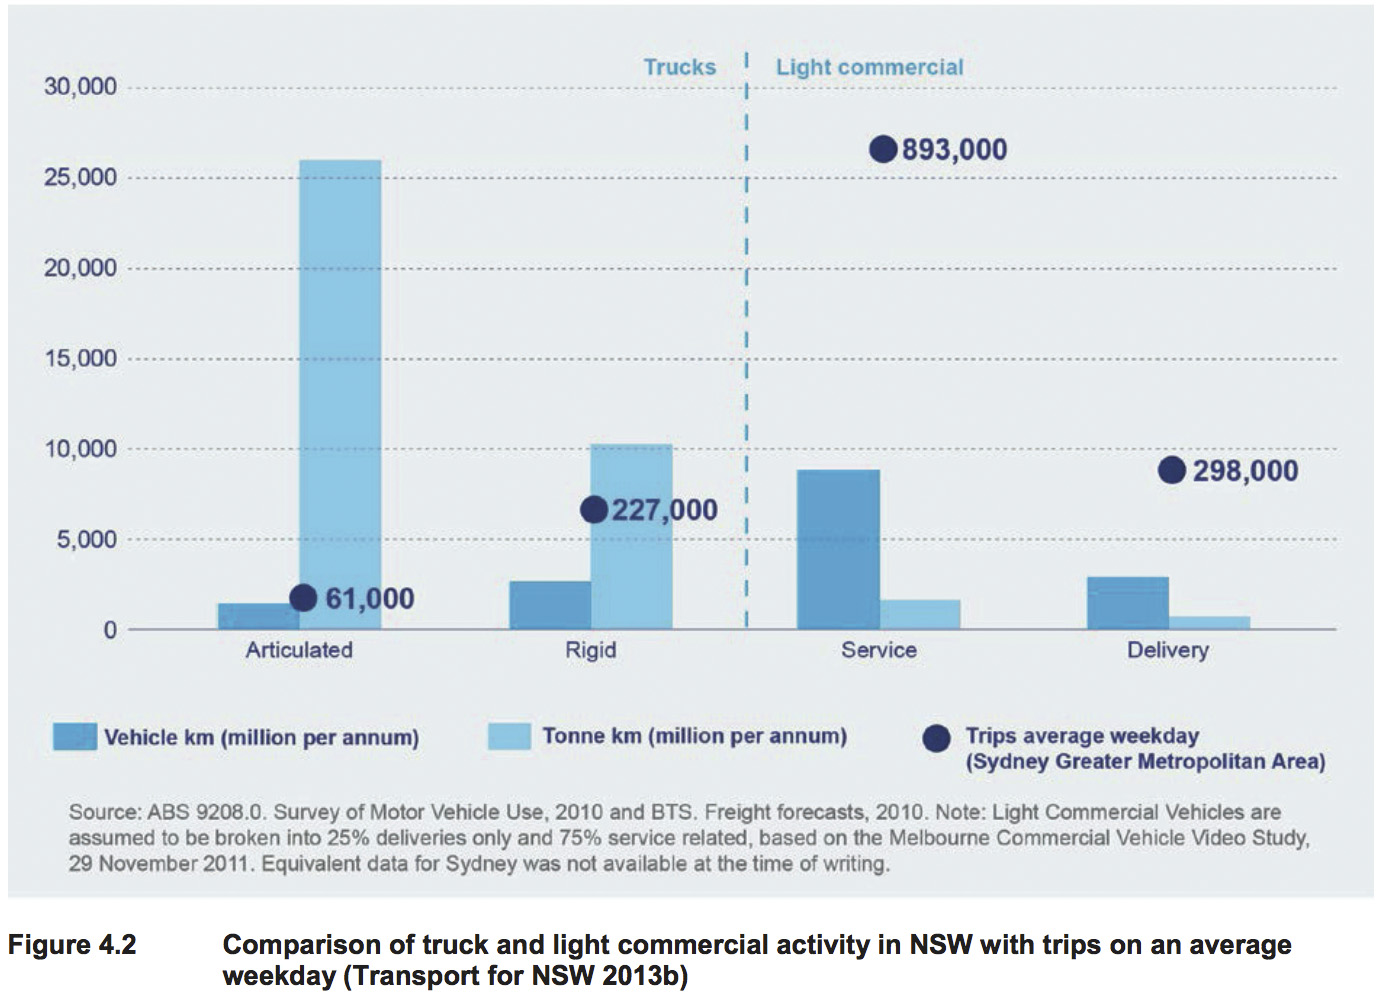 Bar chart comparing types of truck and light commercial activity on NSW roads